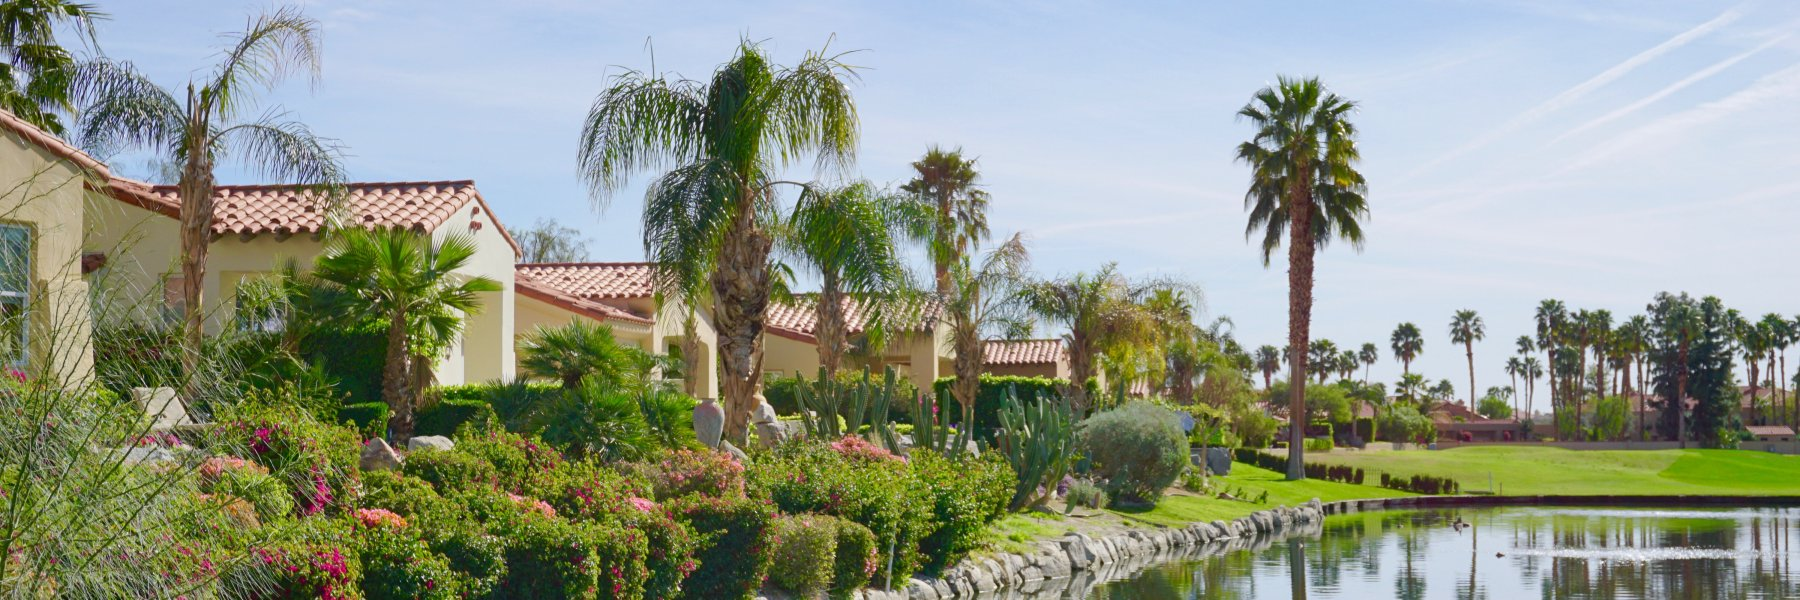 Haciendas at La Quinta is a community of homes in La Quinta California